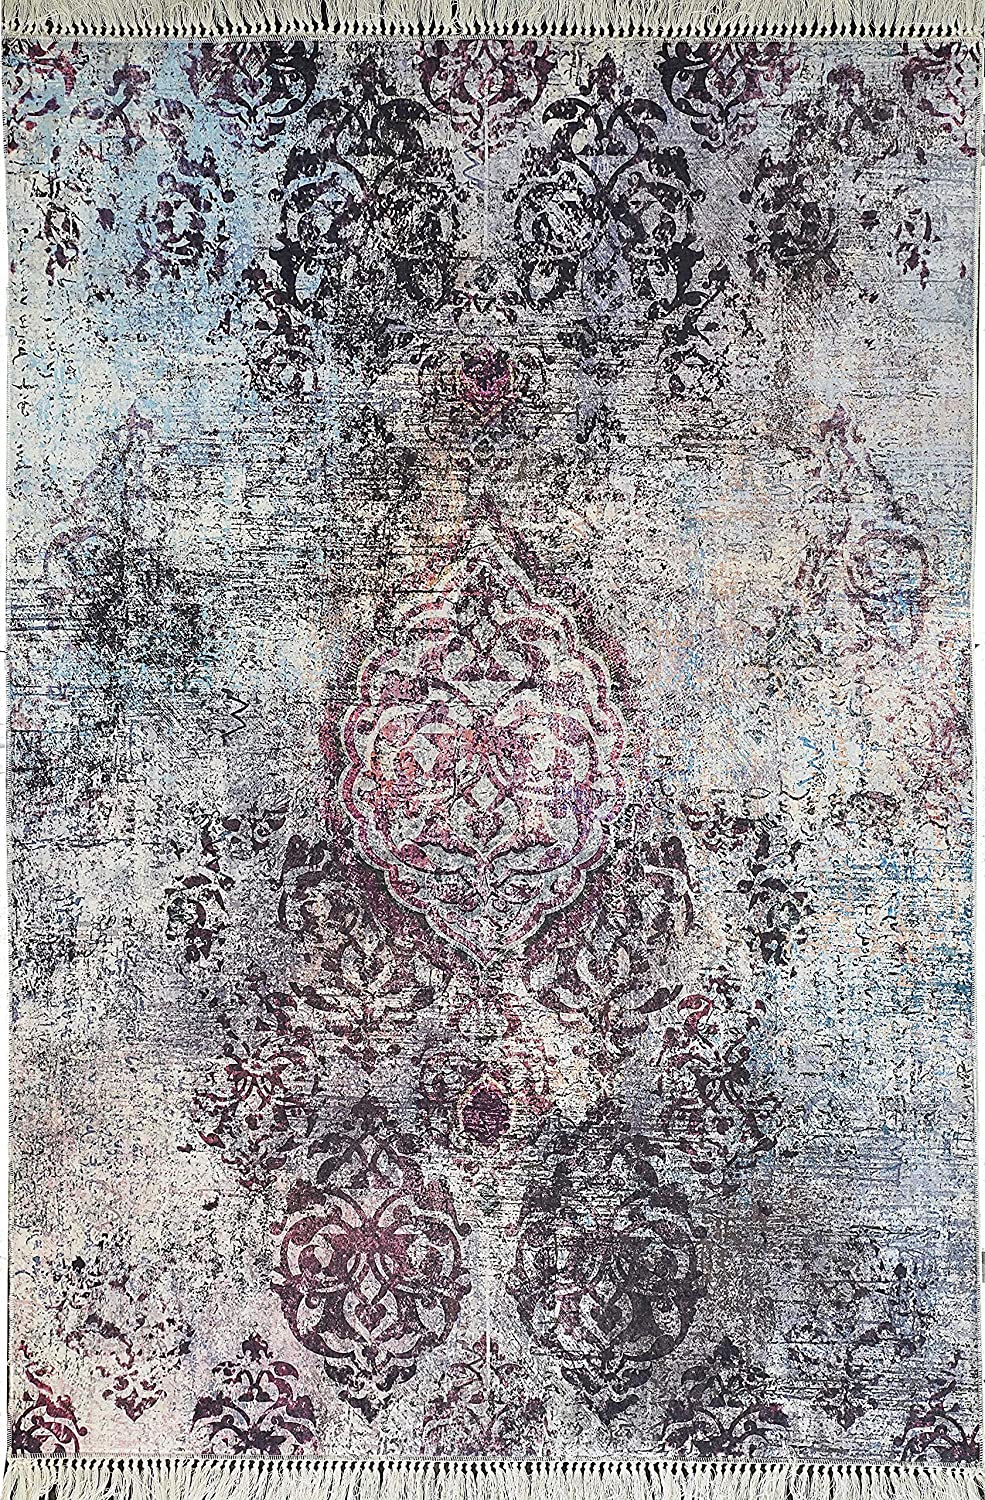 Benissimo Printed Modern Design Area Rug, Soft and Durable, Living Room, Dining Room, Kids Room and Kitchen 5x8 Leather Back   Ashen